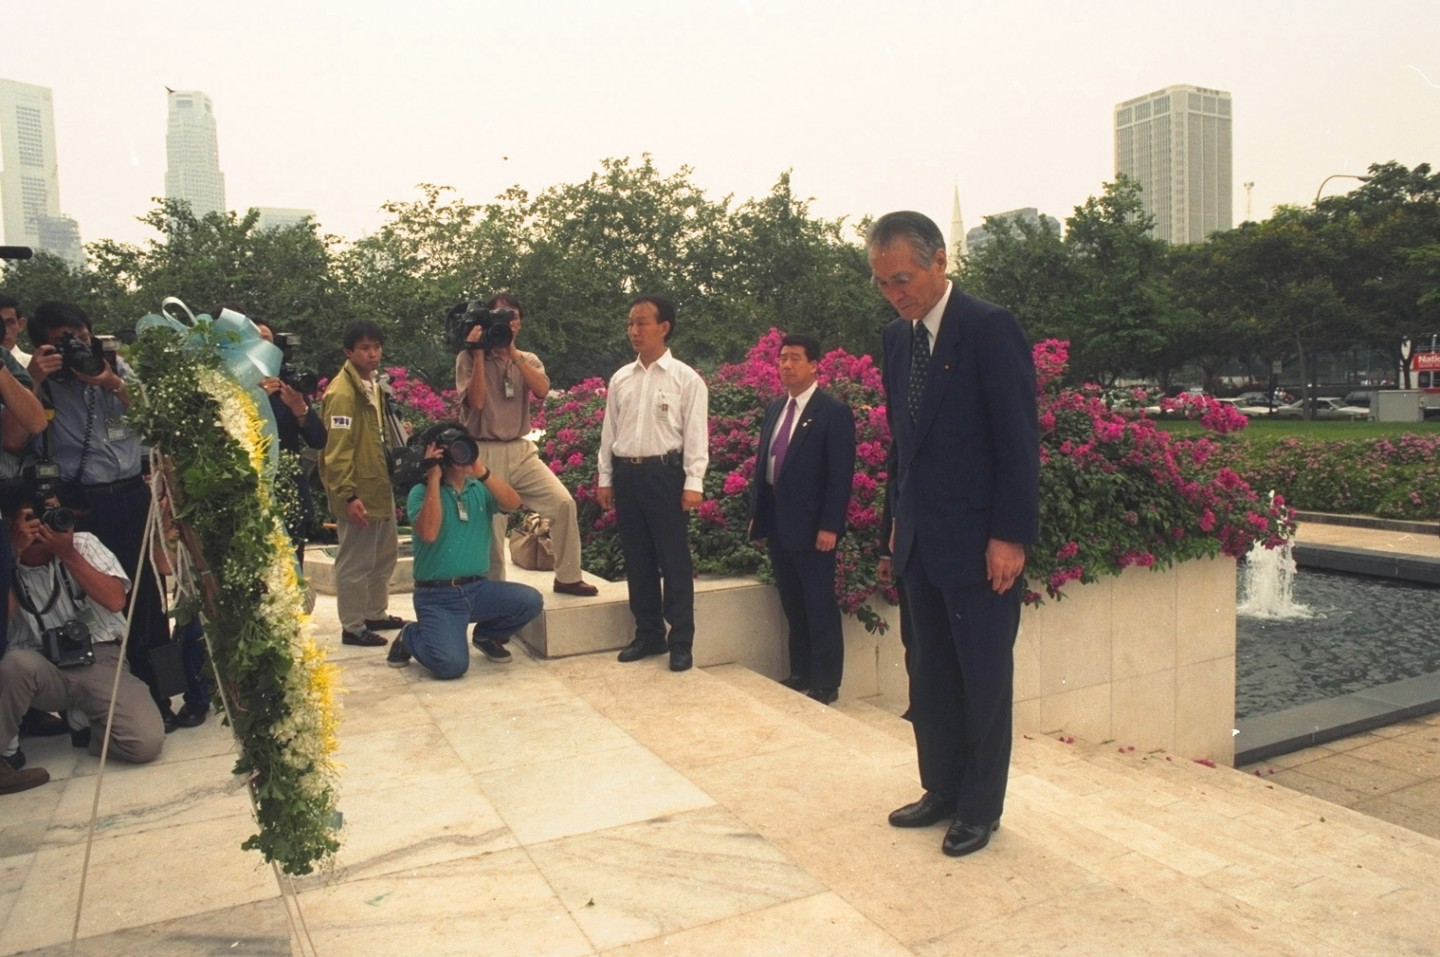 In 1994, Japanese Prime Minister Tomiichi Murayama visited the memorial for Singaporean civilians killed during the Japanese Occupation. After a moment's silence at the foot of the memorial, he bowed briefly before walking up the steps leading to the four columns of the memorial. He then placed a wreath at the base of the columns, bowed again, and remained in the silent, bowed position for about a minute. (SPH)